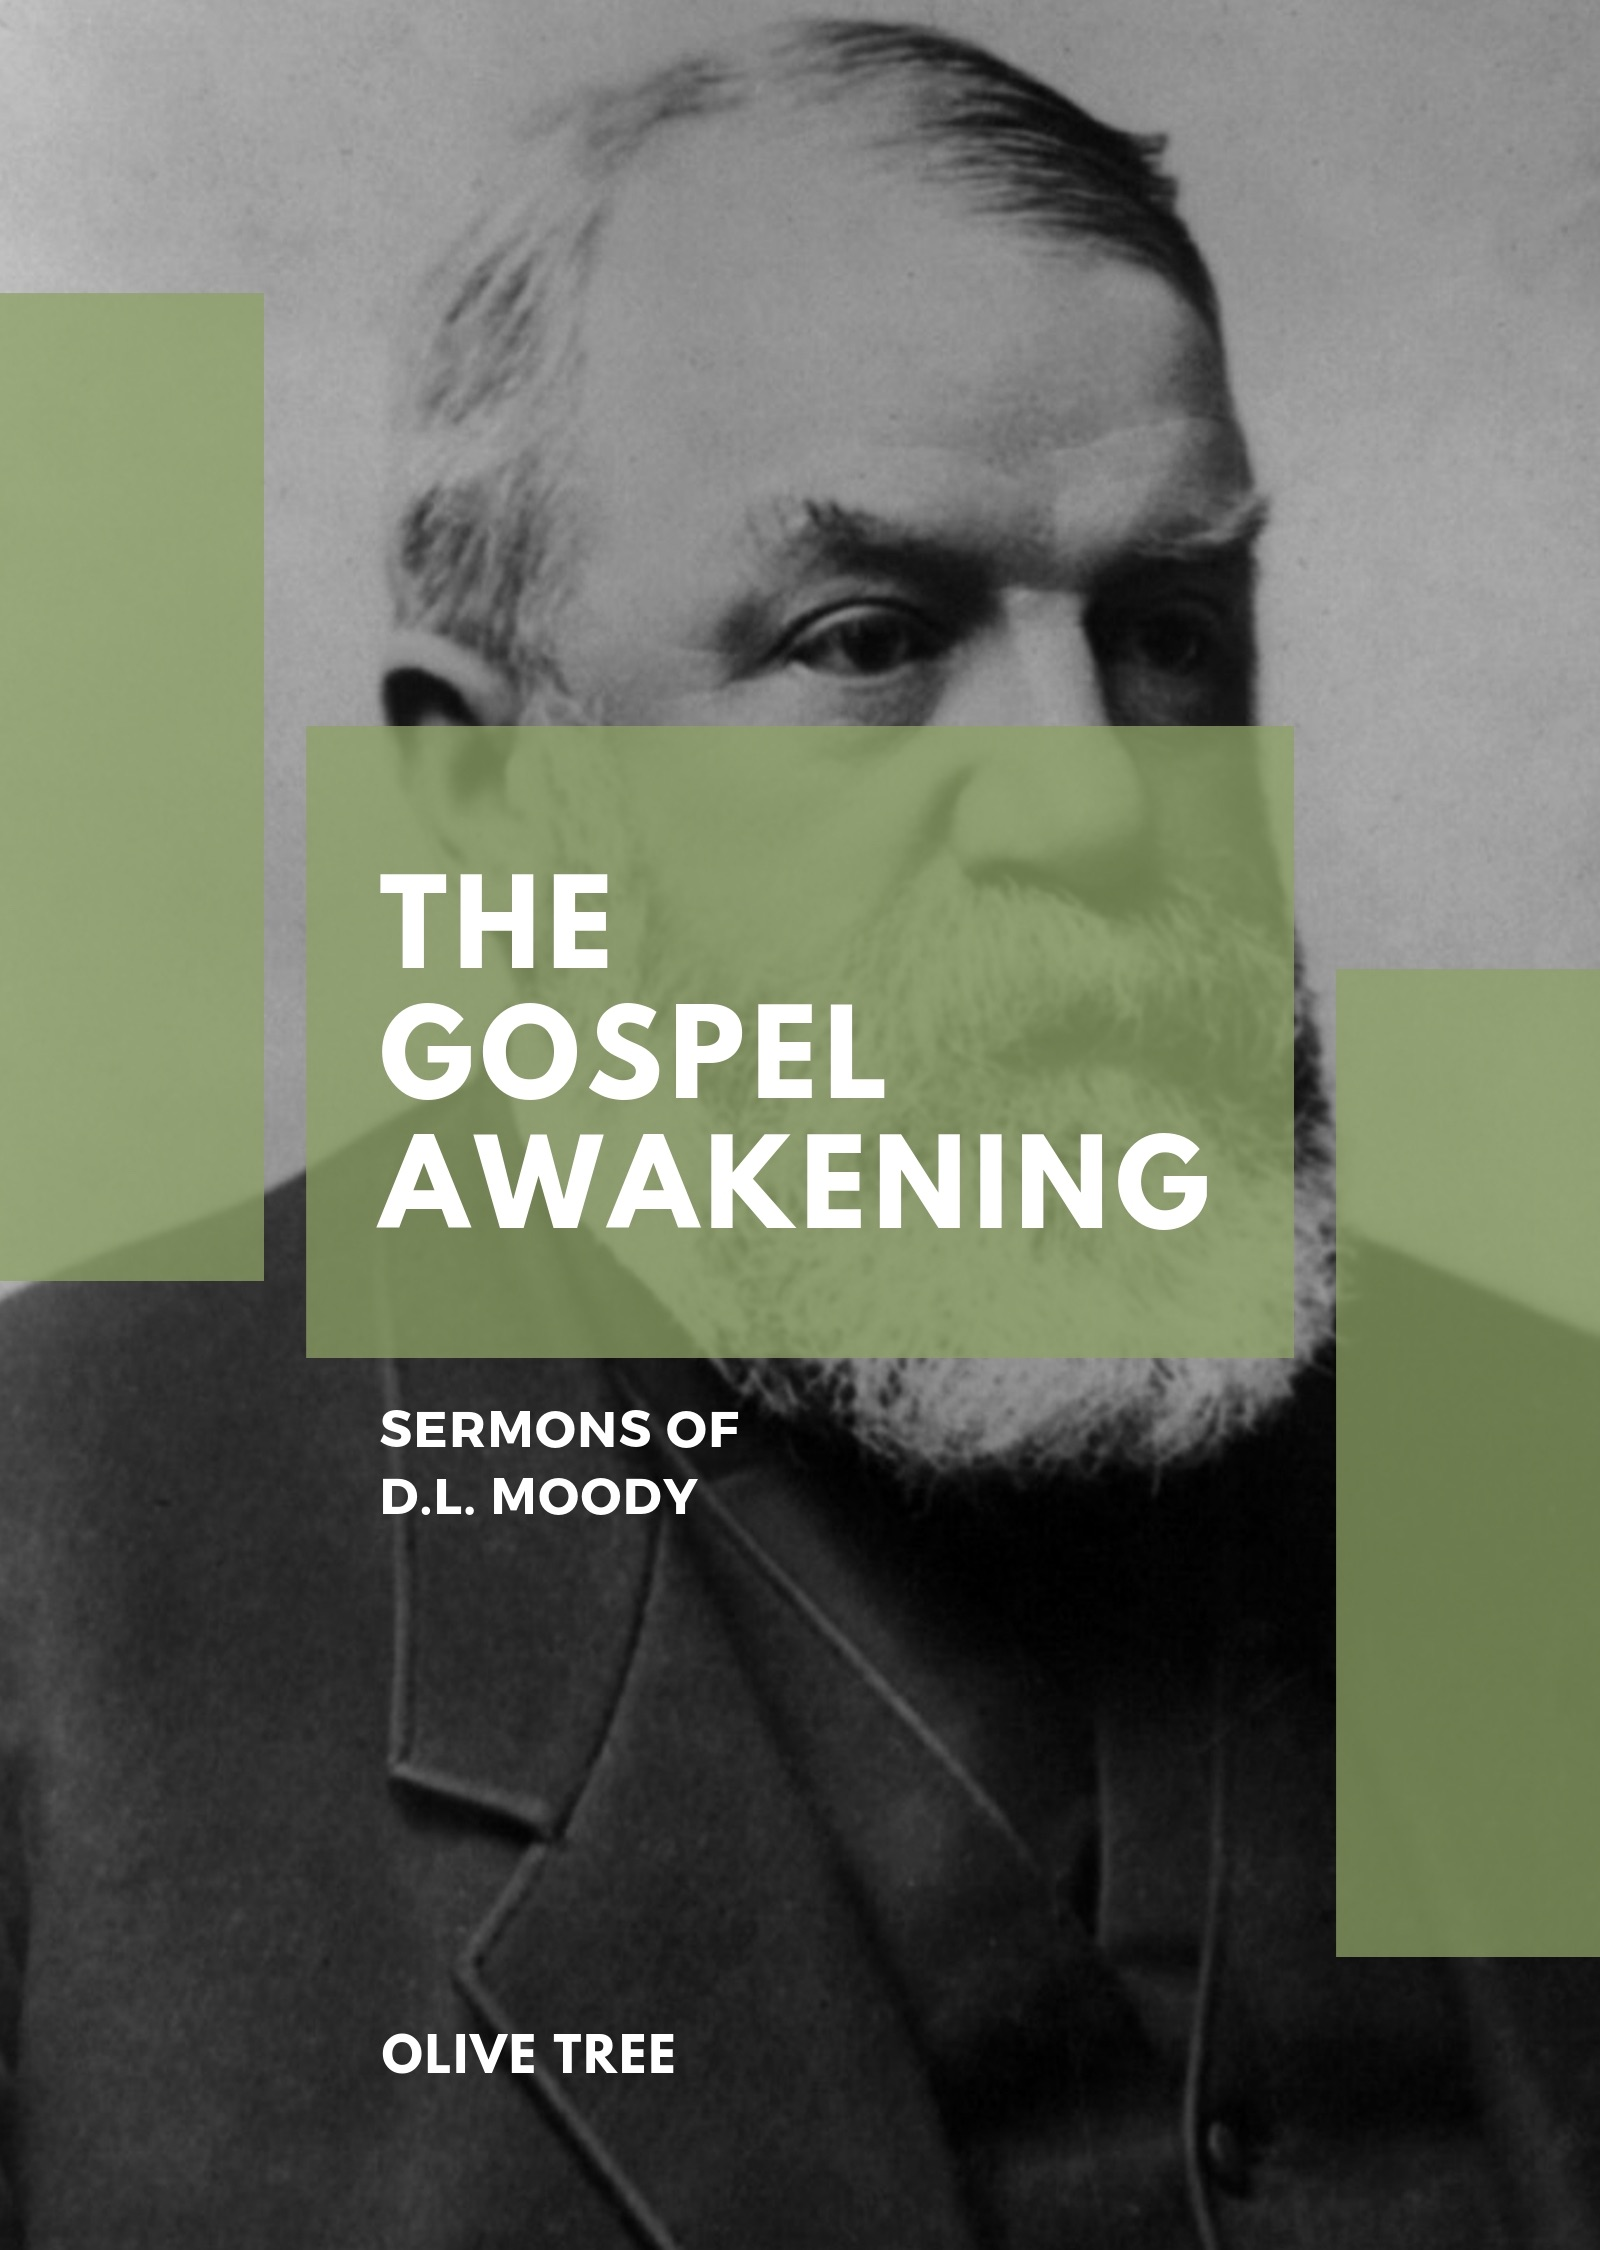 The Gospel Awakening: Sermons of D. L. Moody